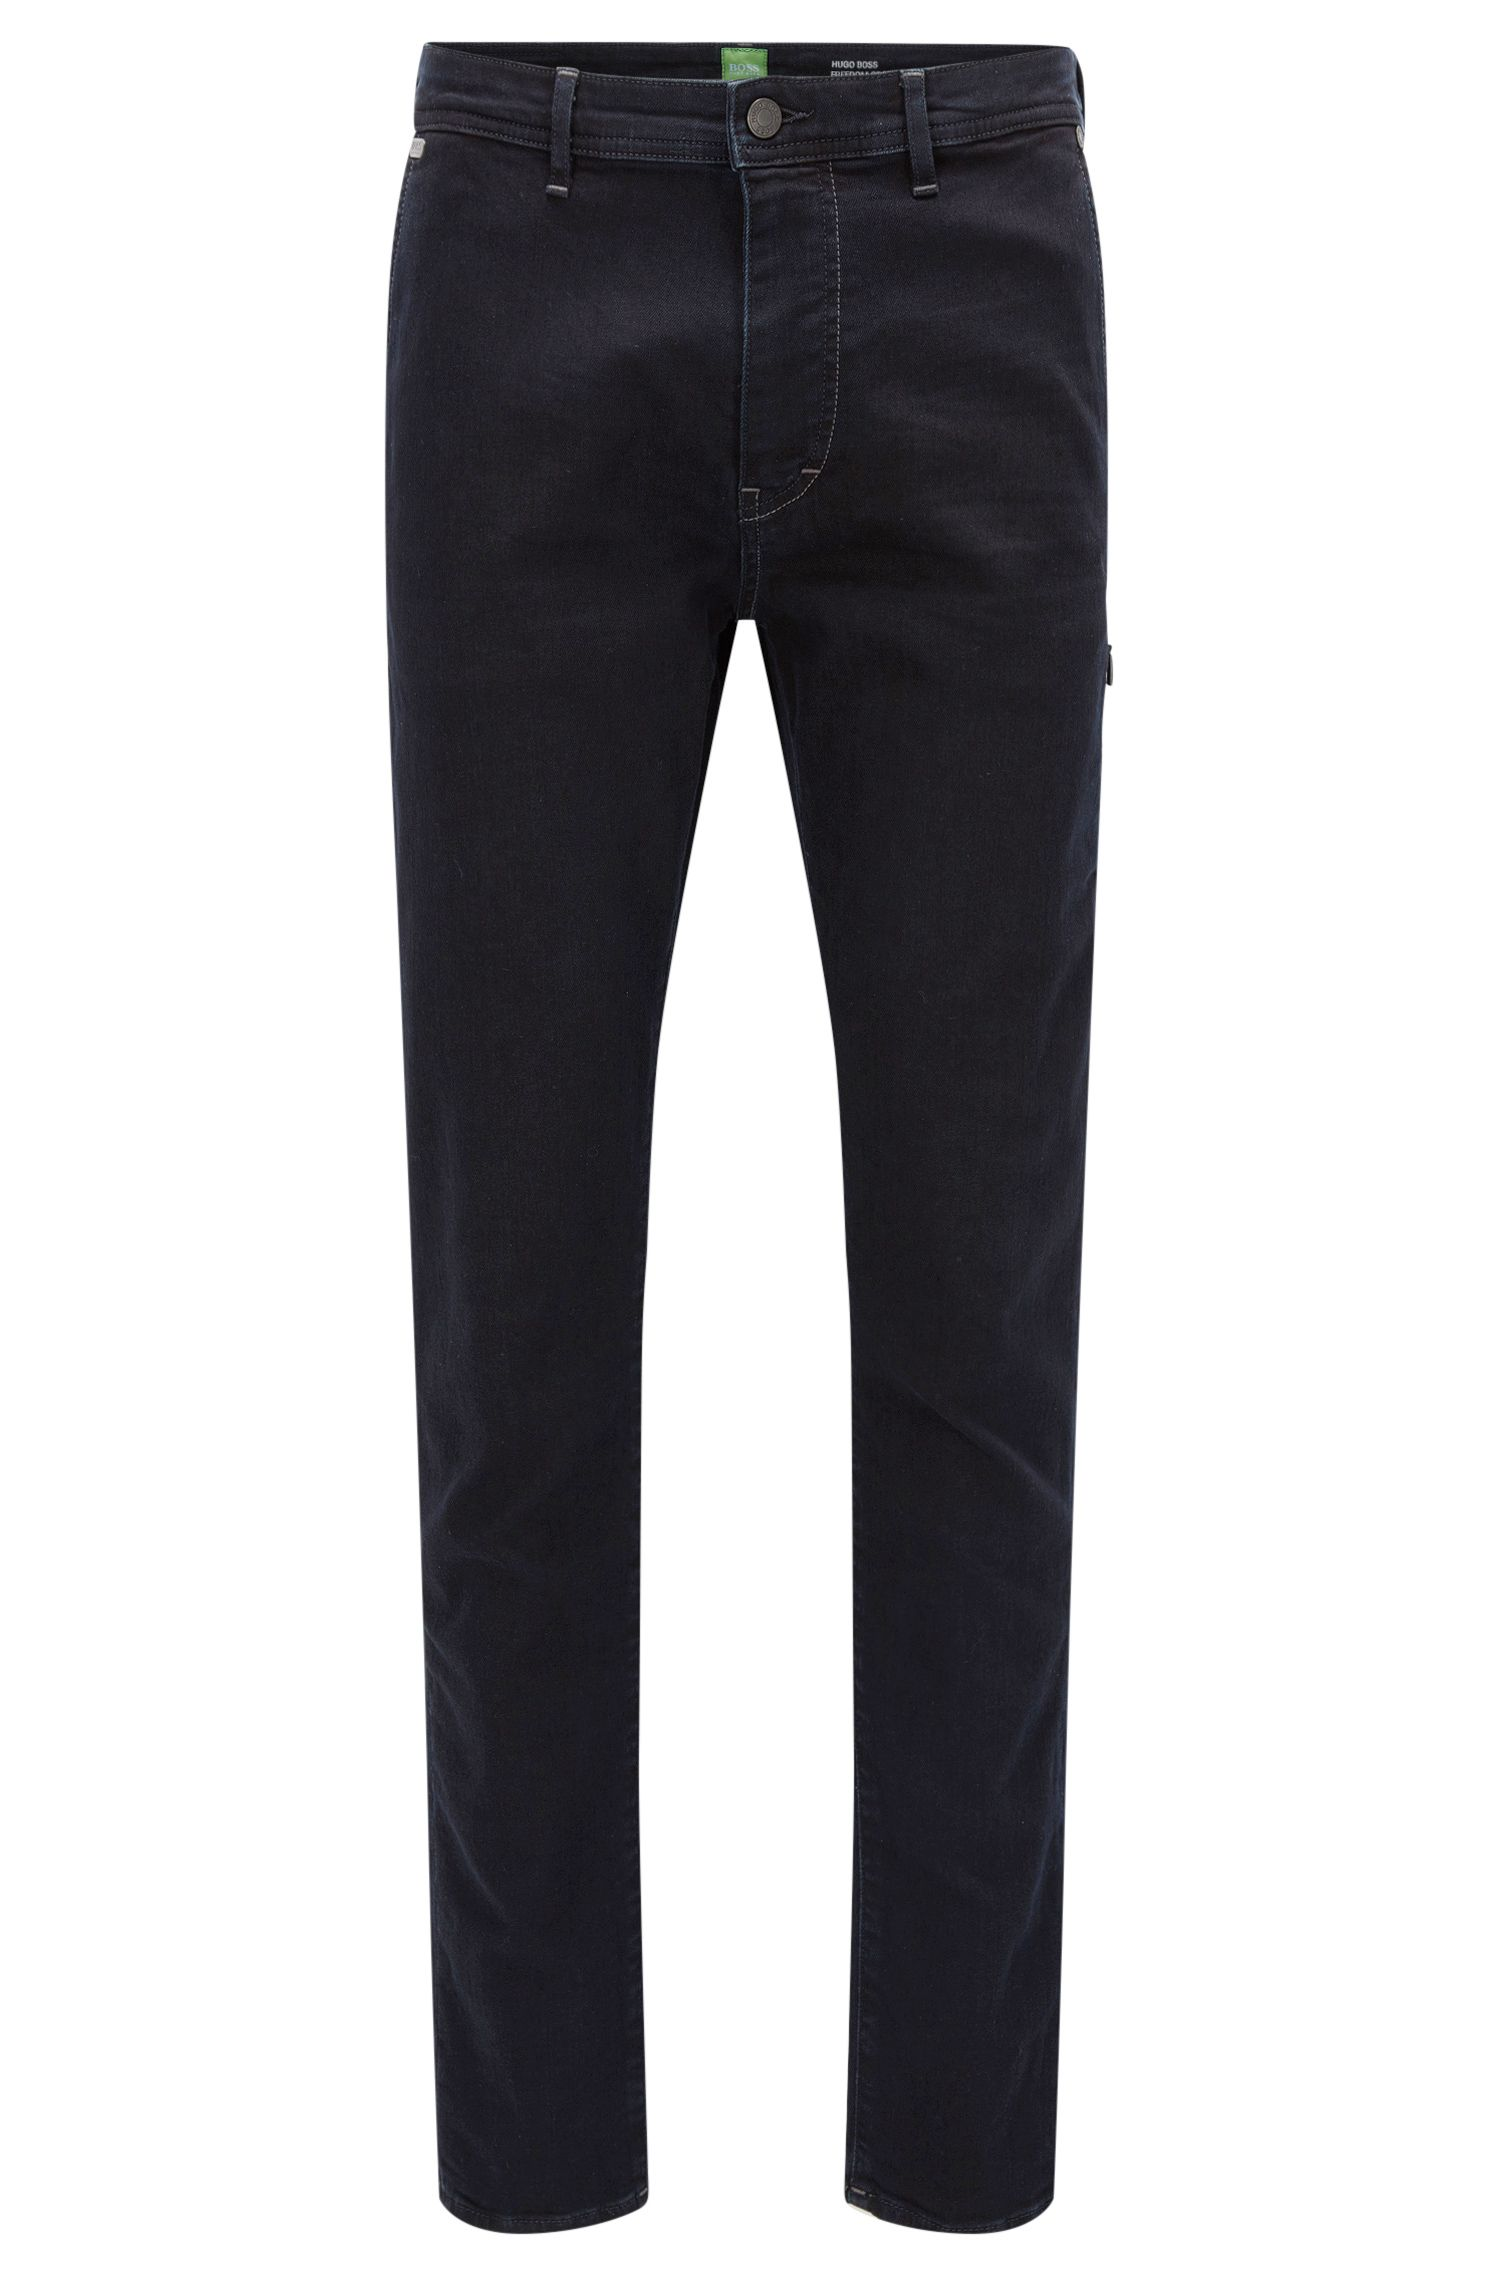 Tapered-fit jeans in power-stretch denim